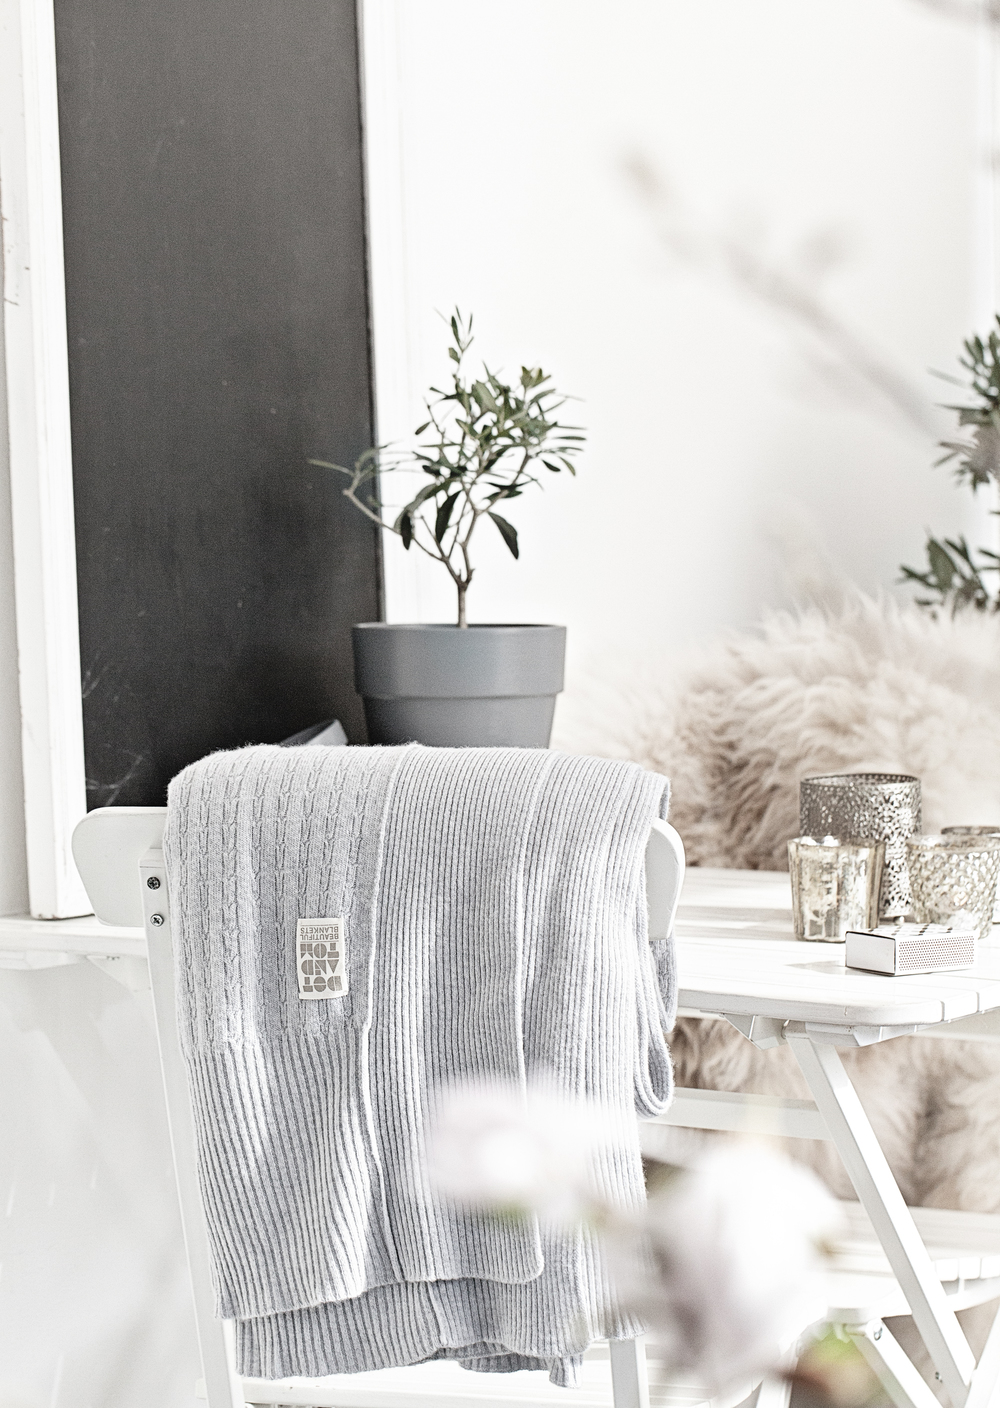 Grey Cable Knit Blanket from Dot & Tom